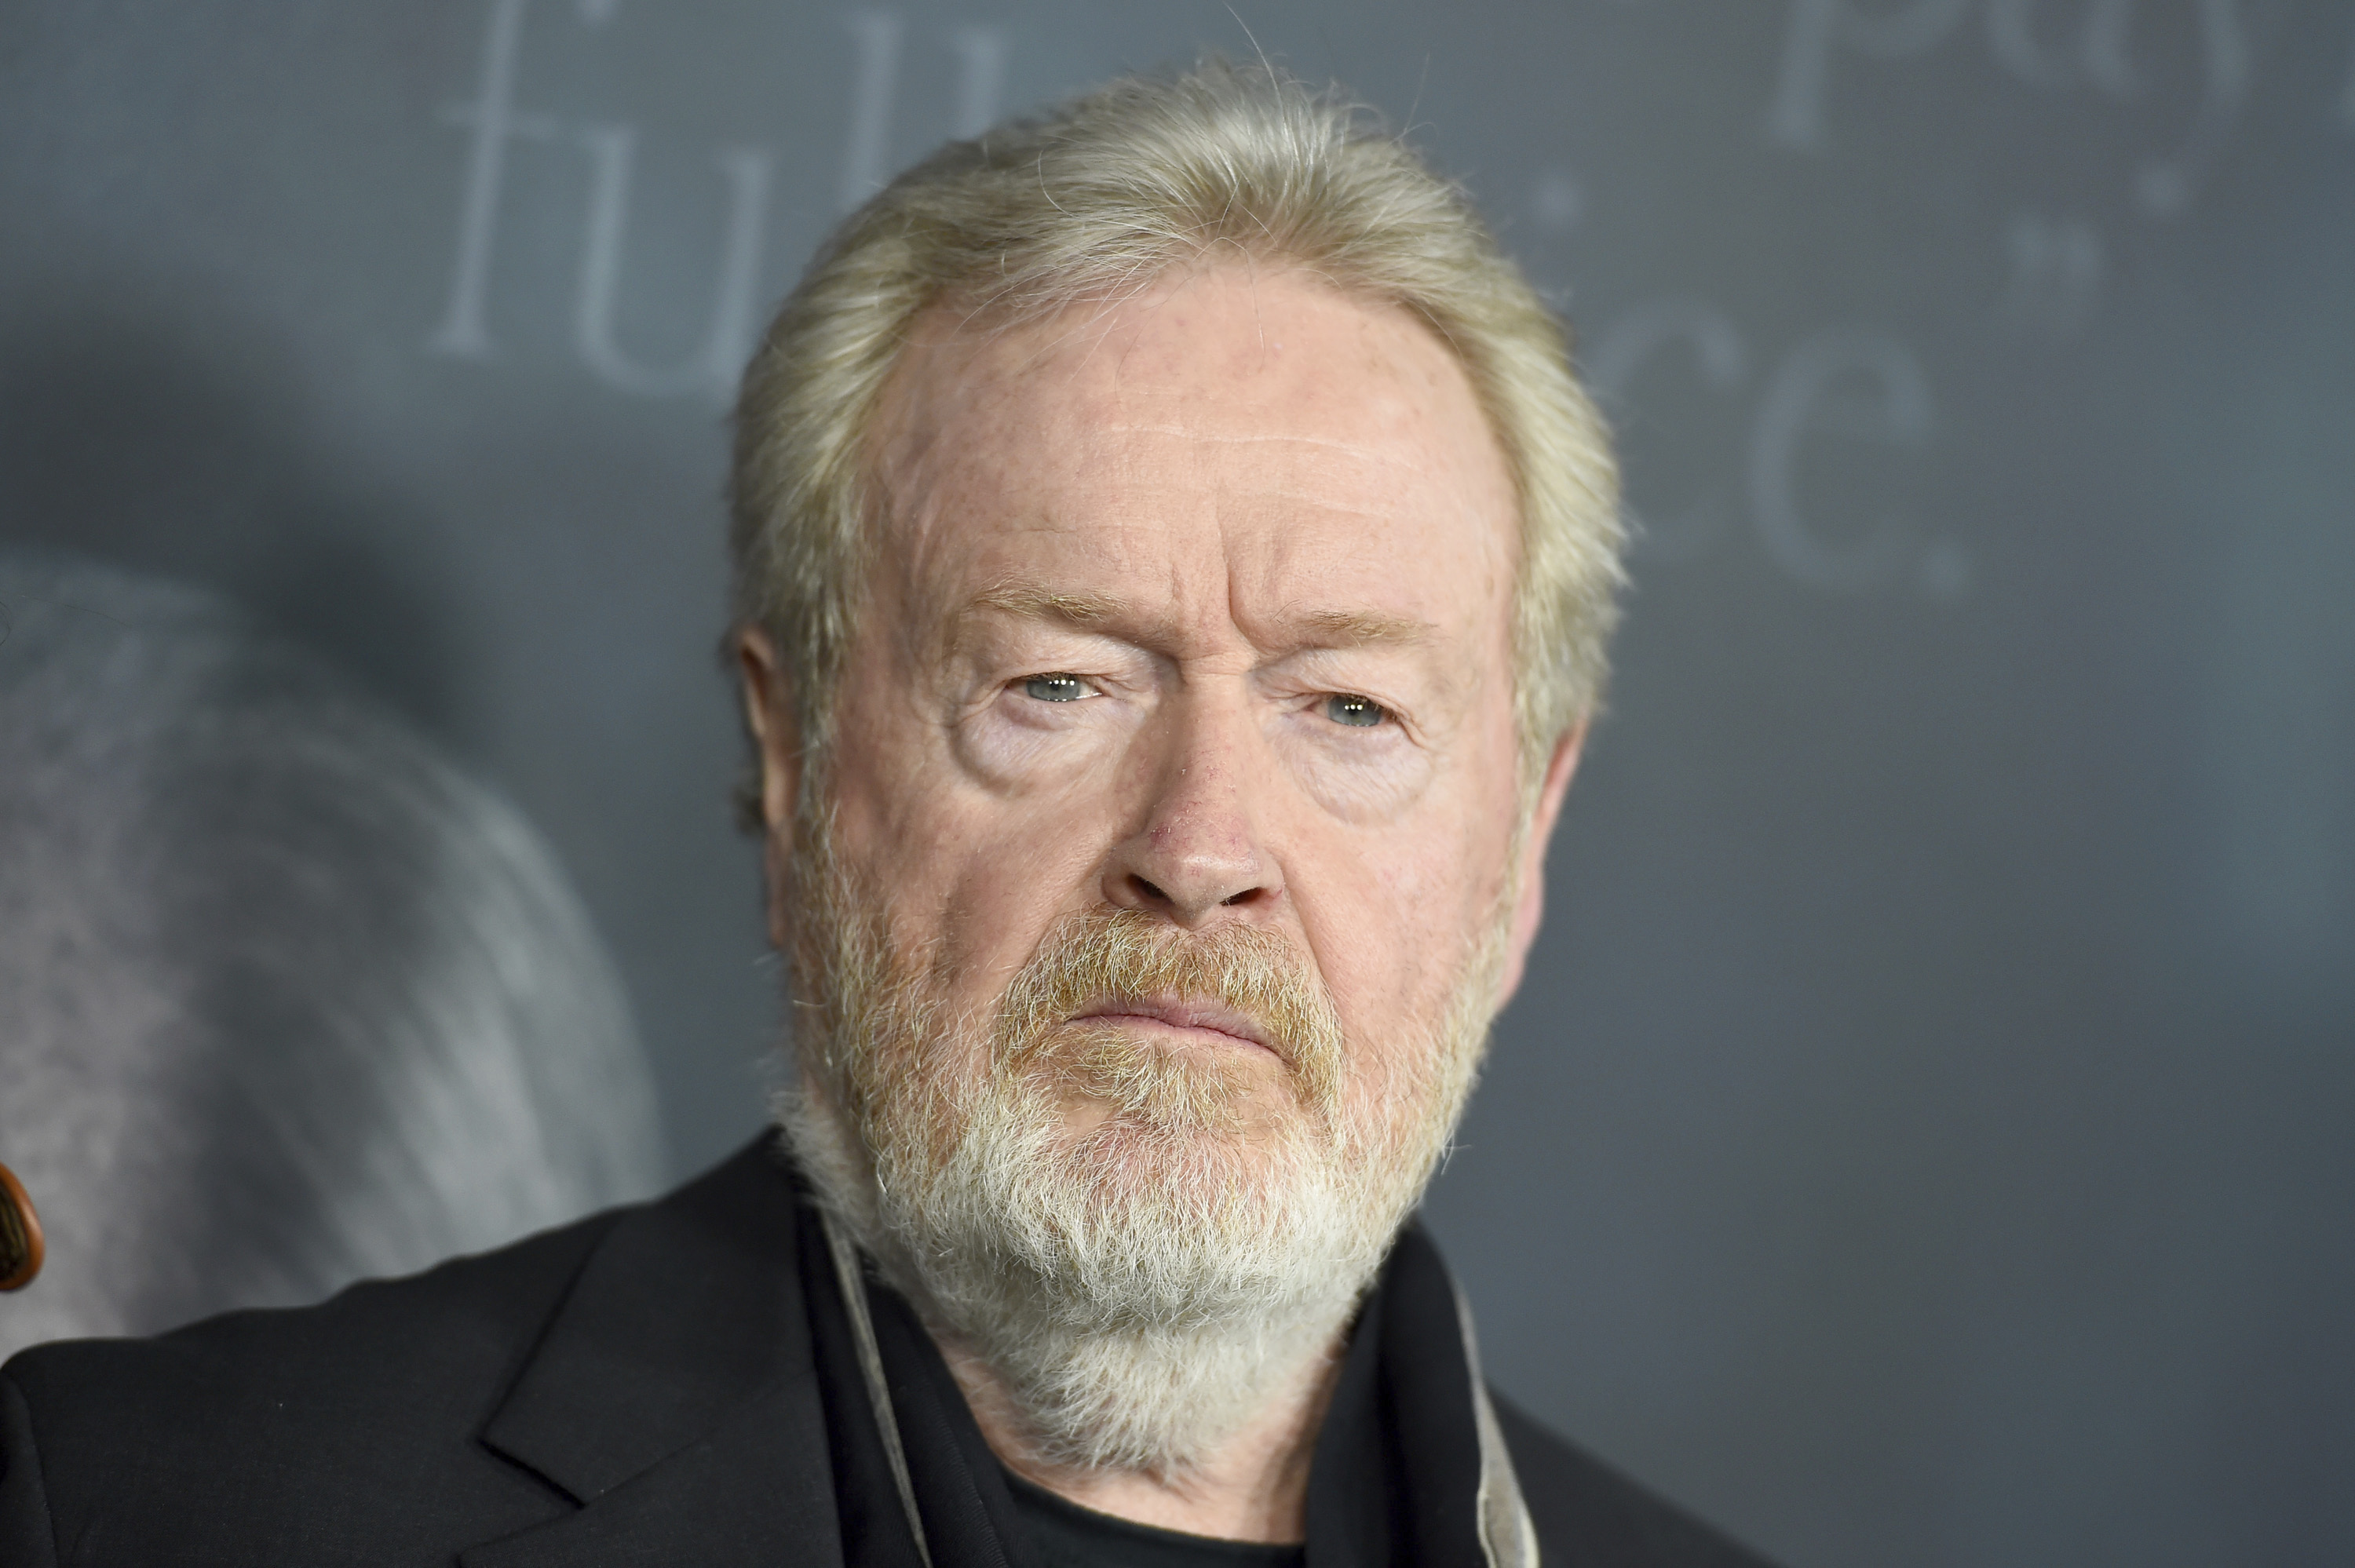 Ridley Scott Thinks It's 'F*cking Stupid' That Disney Hires Inexperienced Directors to Make 'Star Wars' Movies